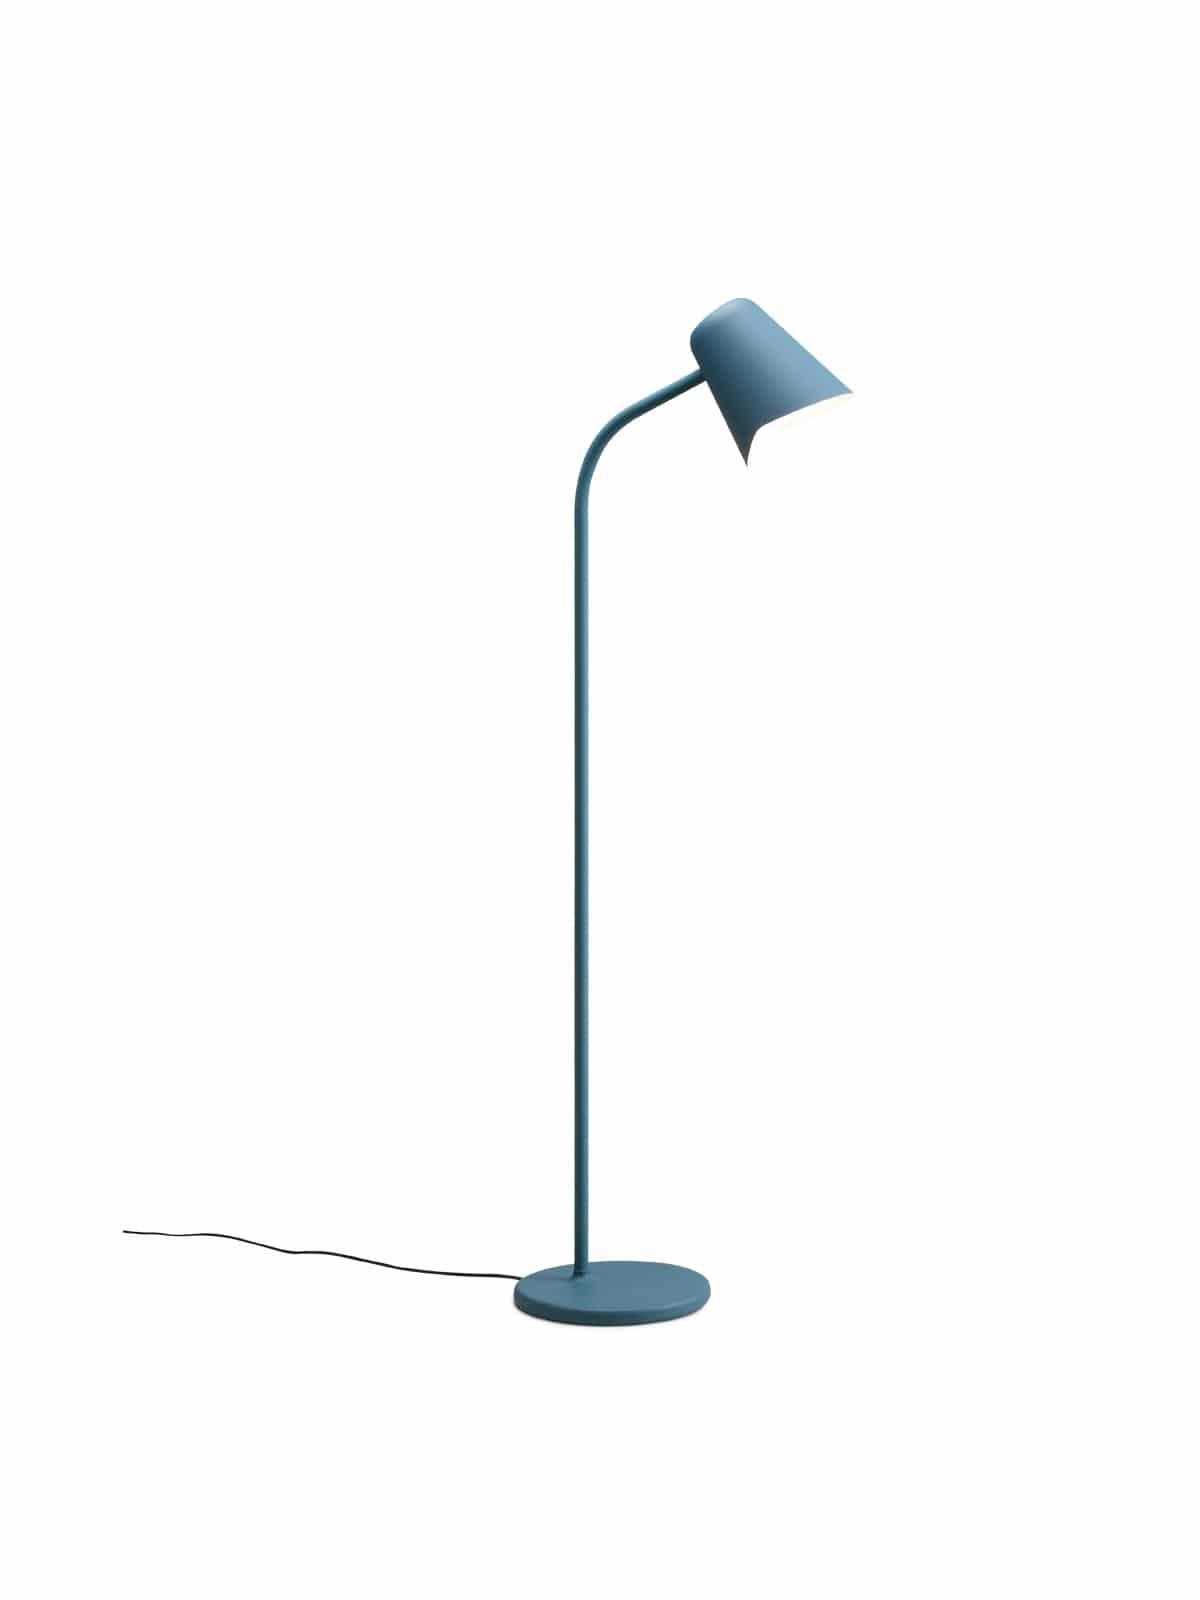 Stehlampe Me von Northern Lighting Onlineshop DesignOrt